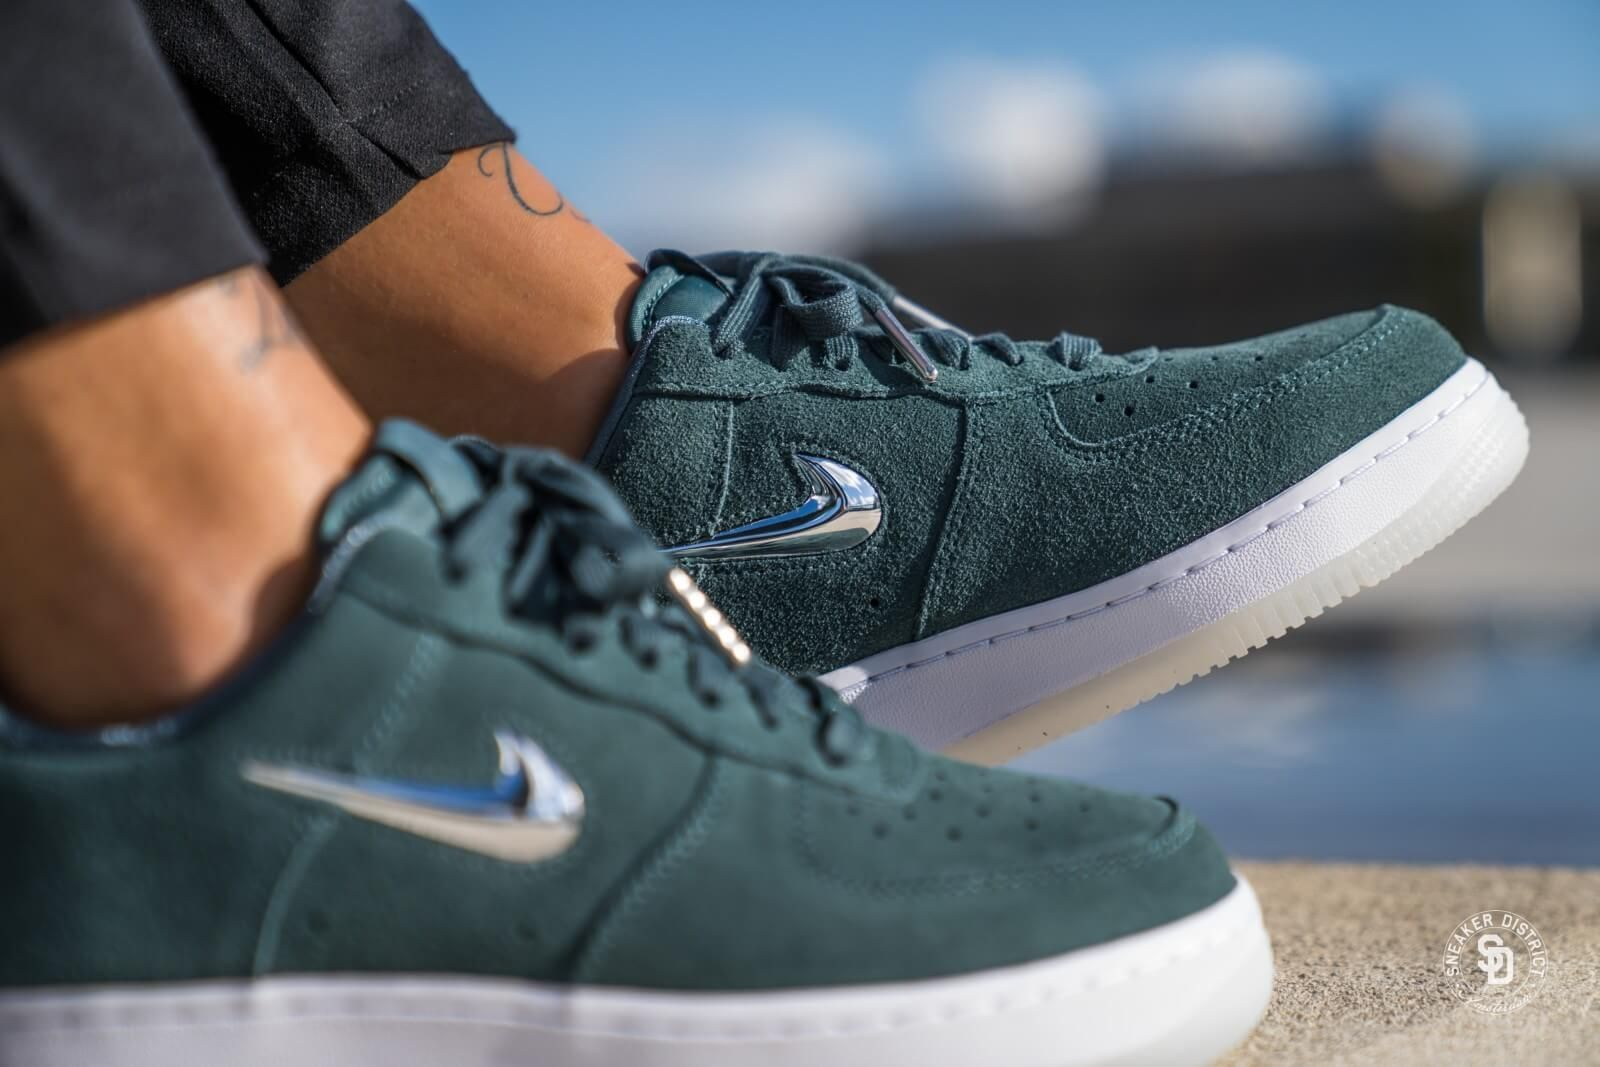 low priced 6d7d2 709fc Nike Women's Air Force 1 '07 Premium LX Faded Spruce/Metallic Silver -  AO3814-300